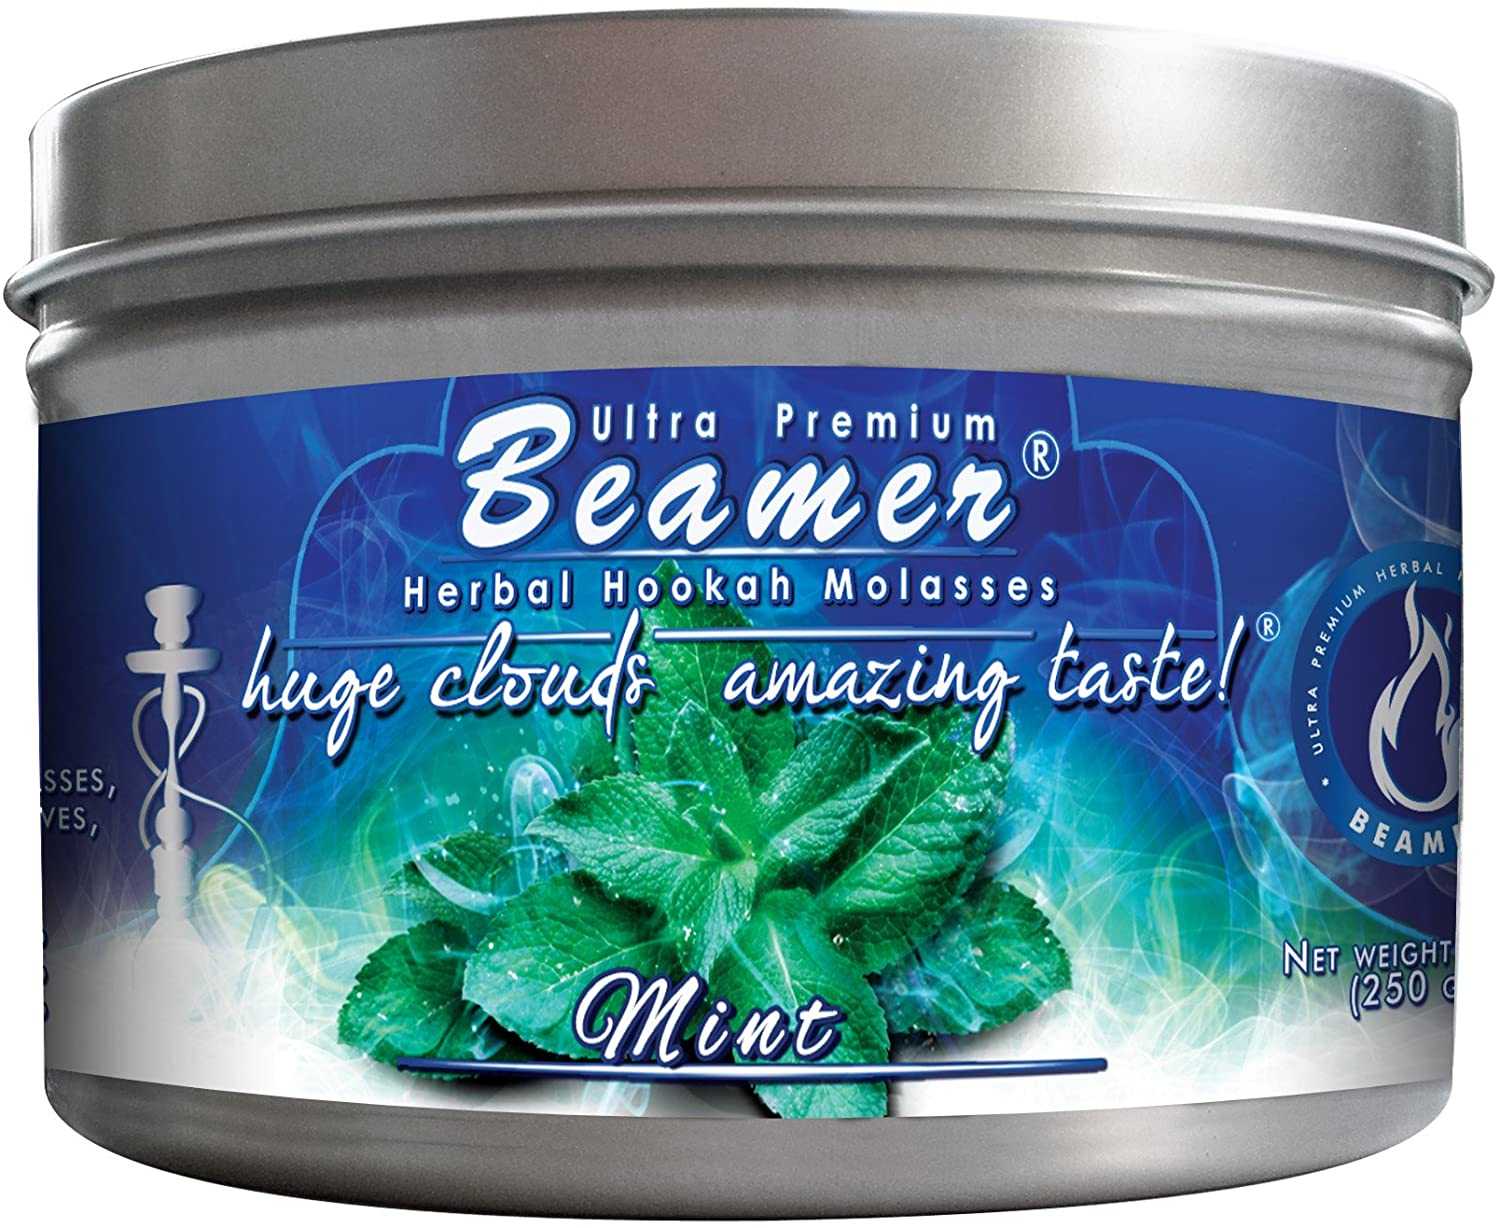 Mint Beamer Ultra Premium Hookah Molasses 250 gram tin. Huge Clouds, Amazing Taste! 100 % Tobacco, Nicotine & Tar Free but more taste than tobacco! Compare to Hookah Tobacco! GREAT TASTE, LOTS OF SMOKE & SMELLS GREAT!!!